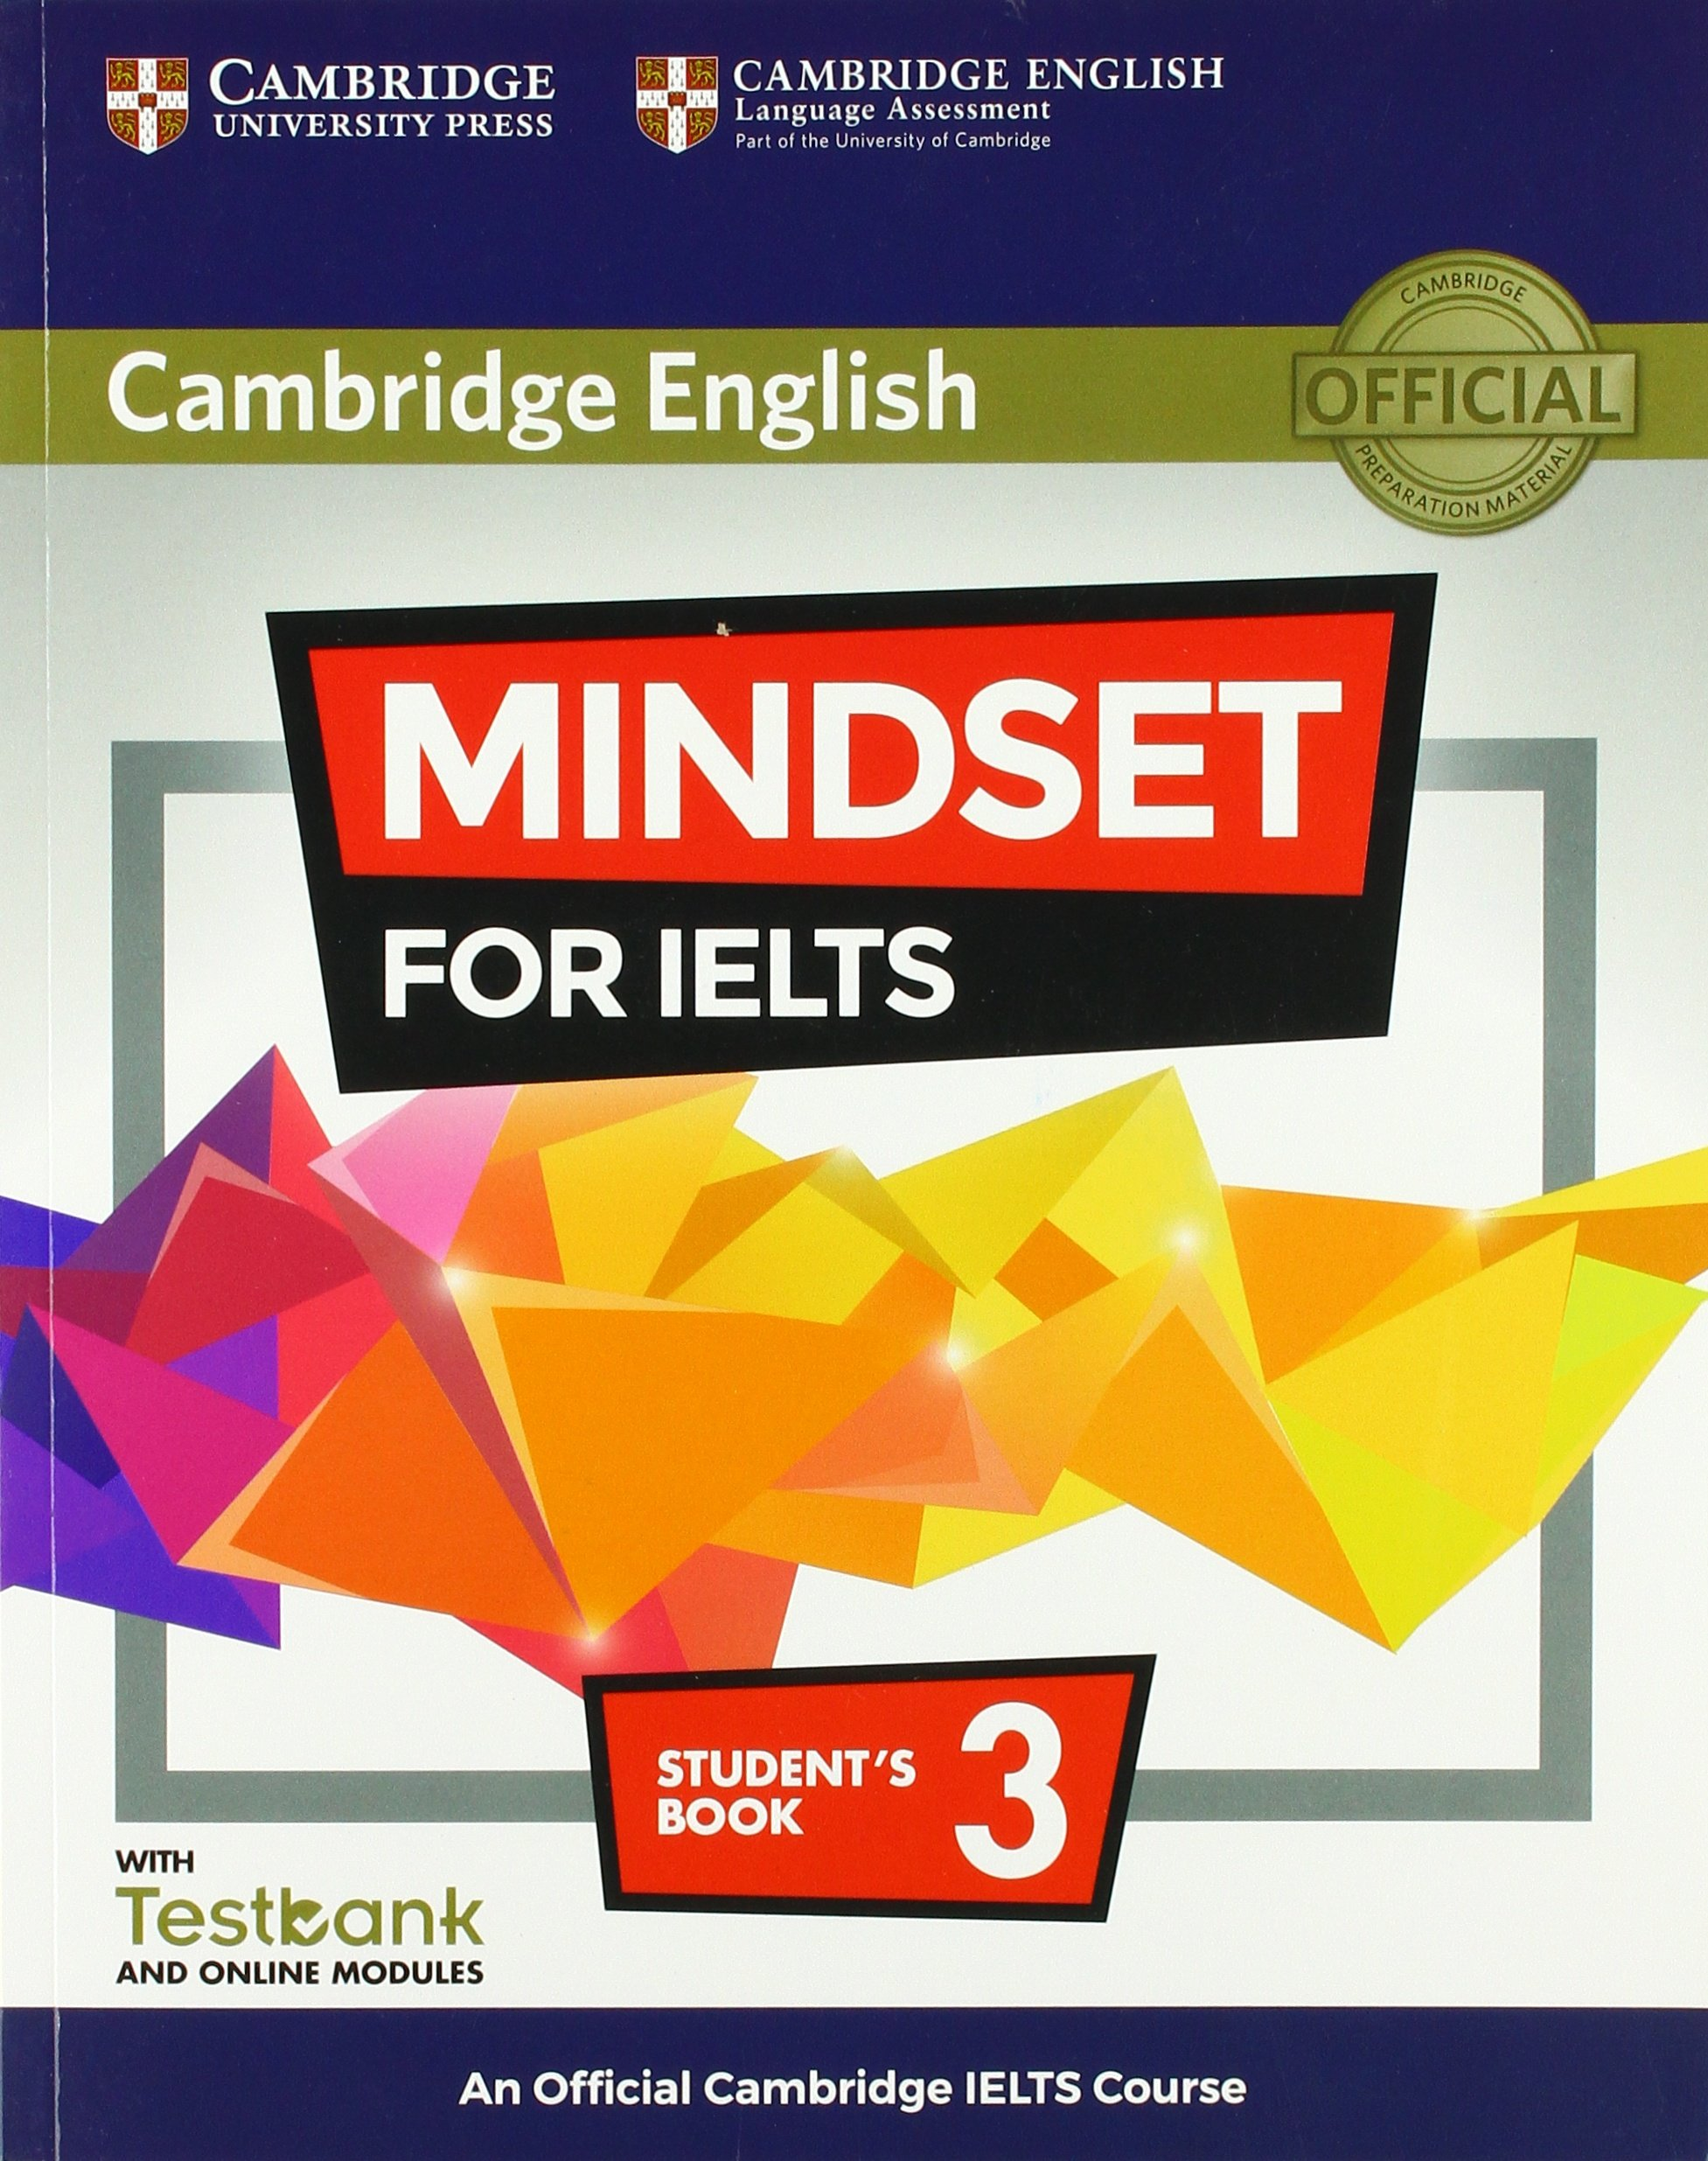 Mindset for IELTS Level 3 Student's Book with Testbank and